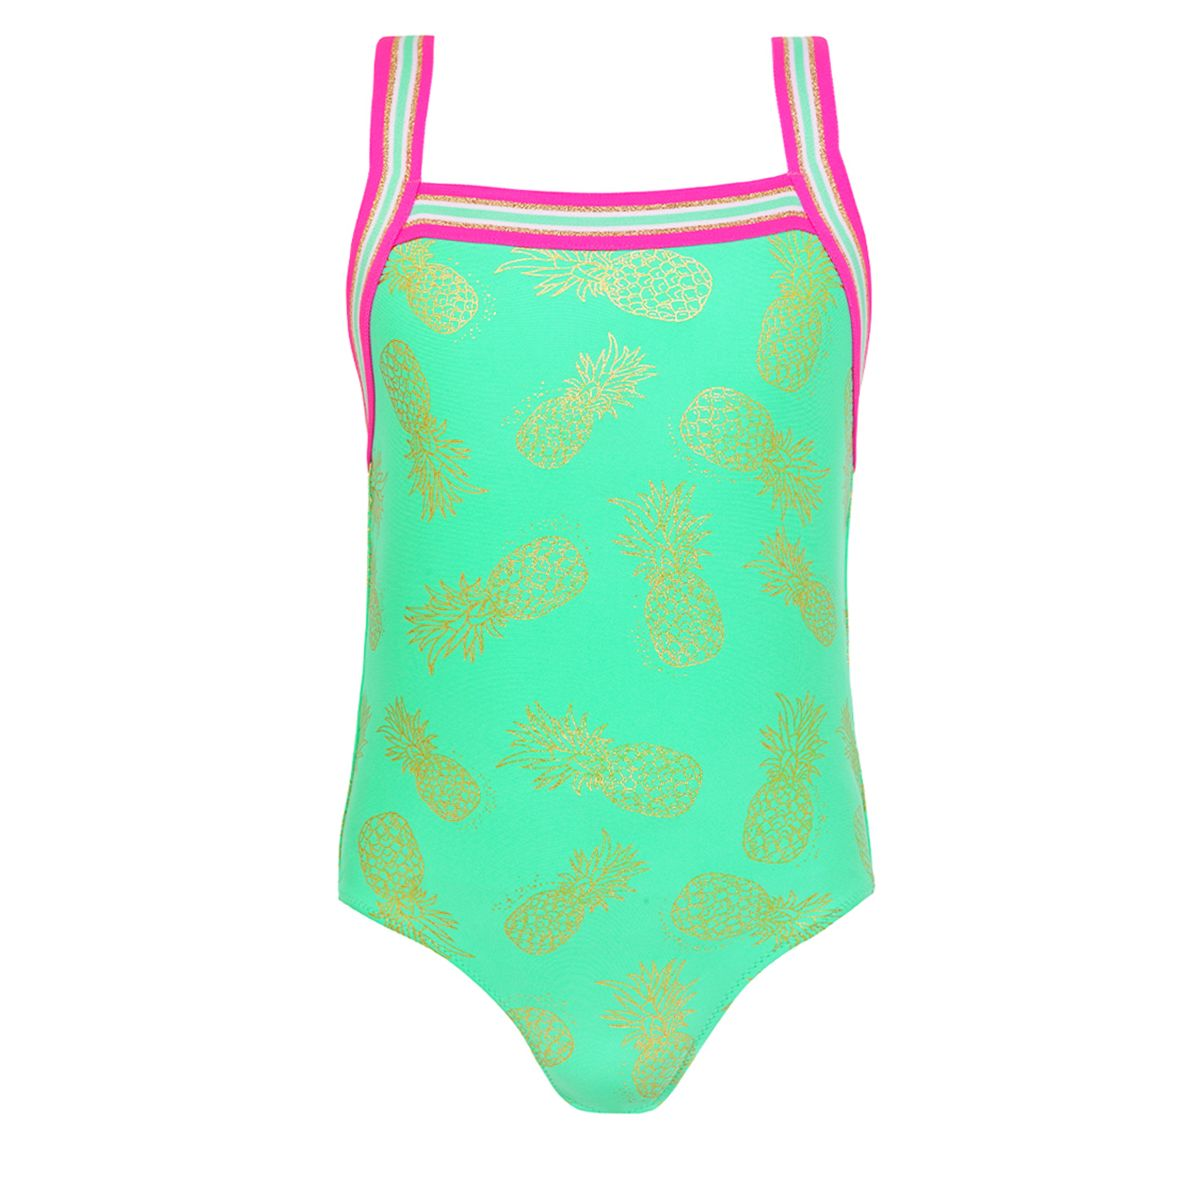 Sunuva Girls pastel green gold pineapple badpak